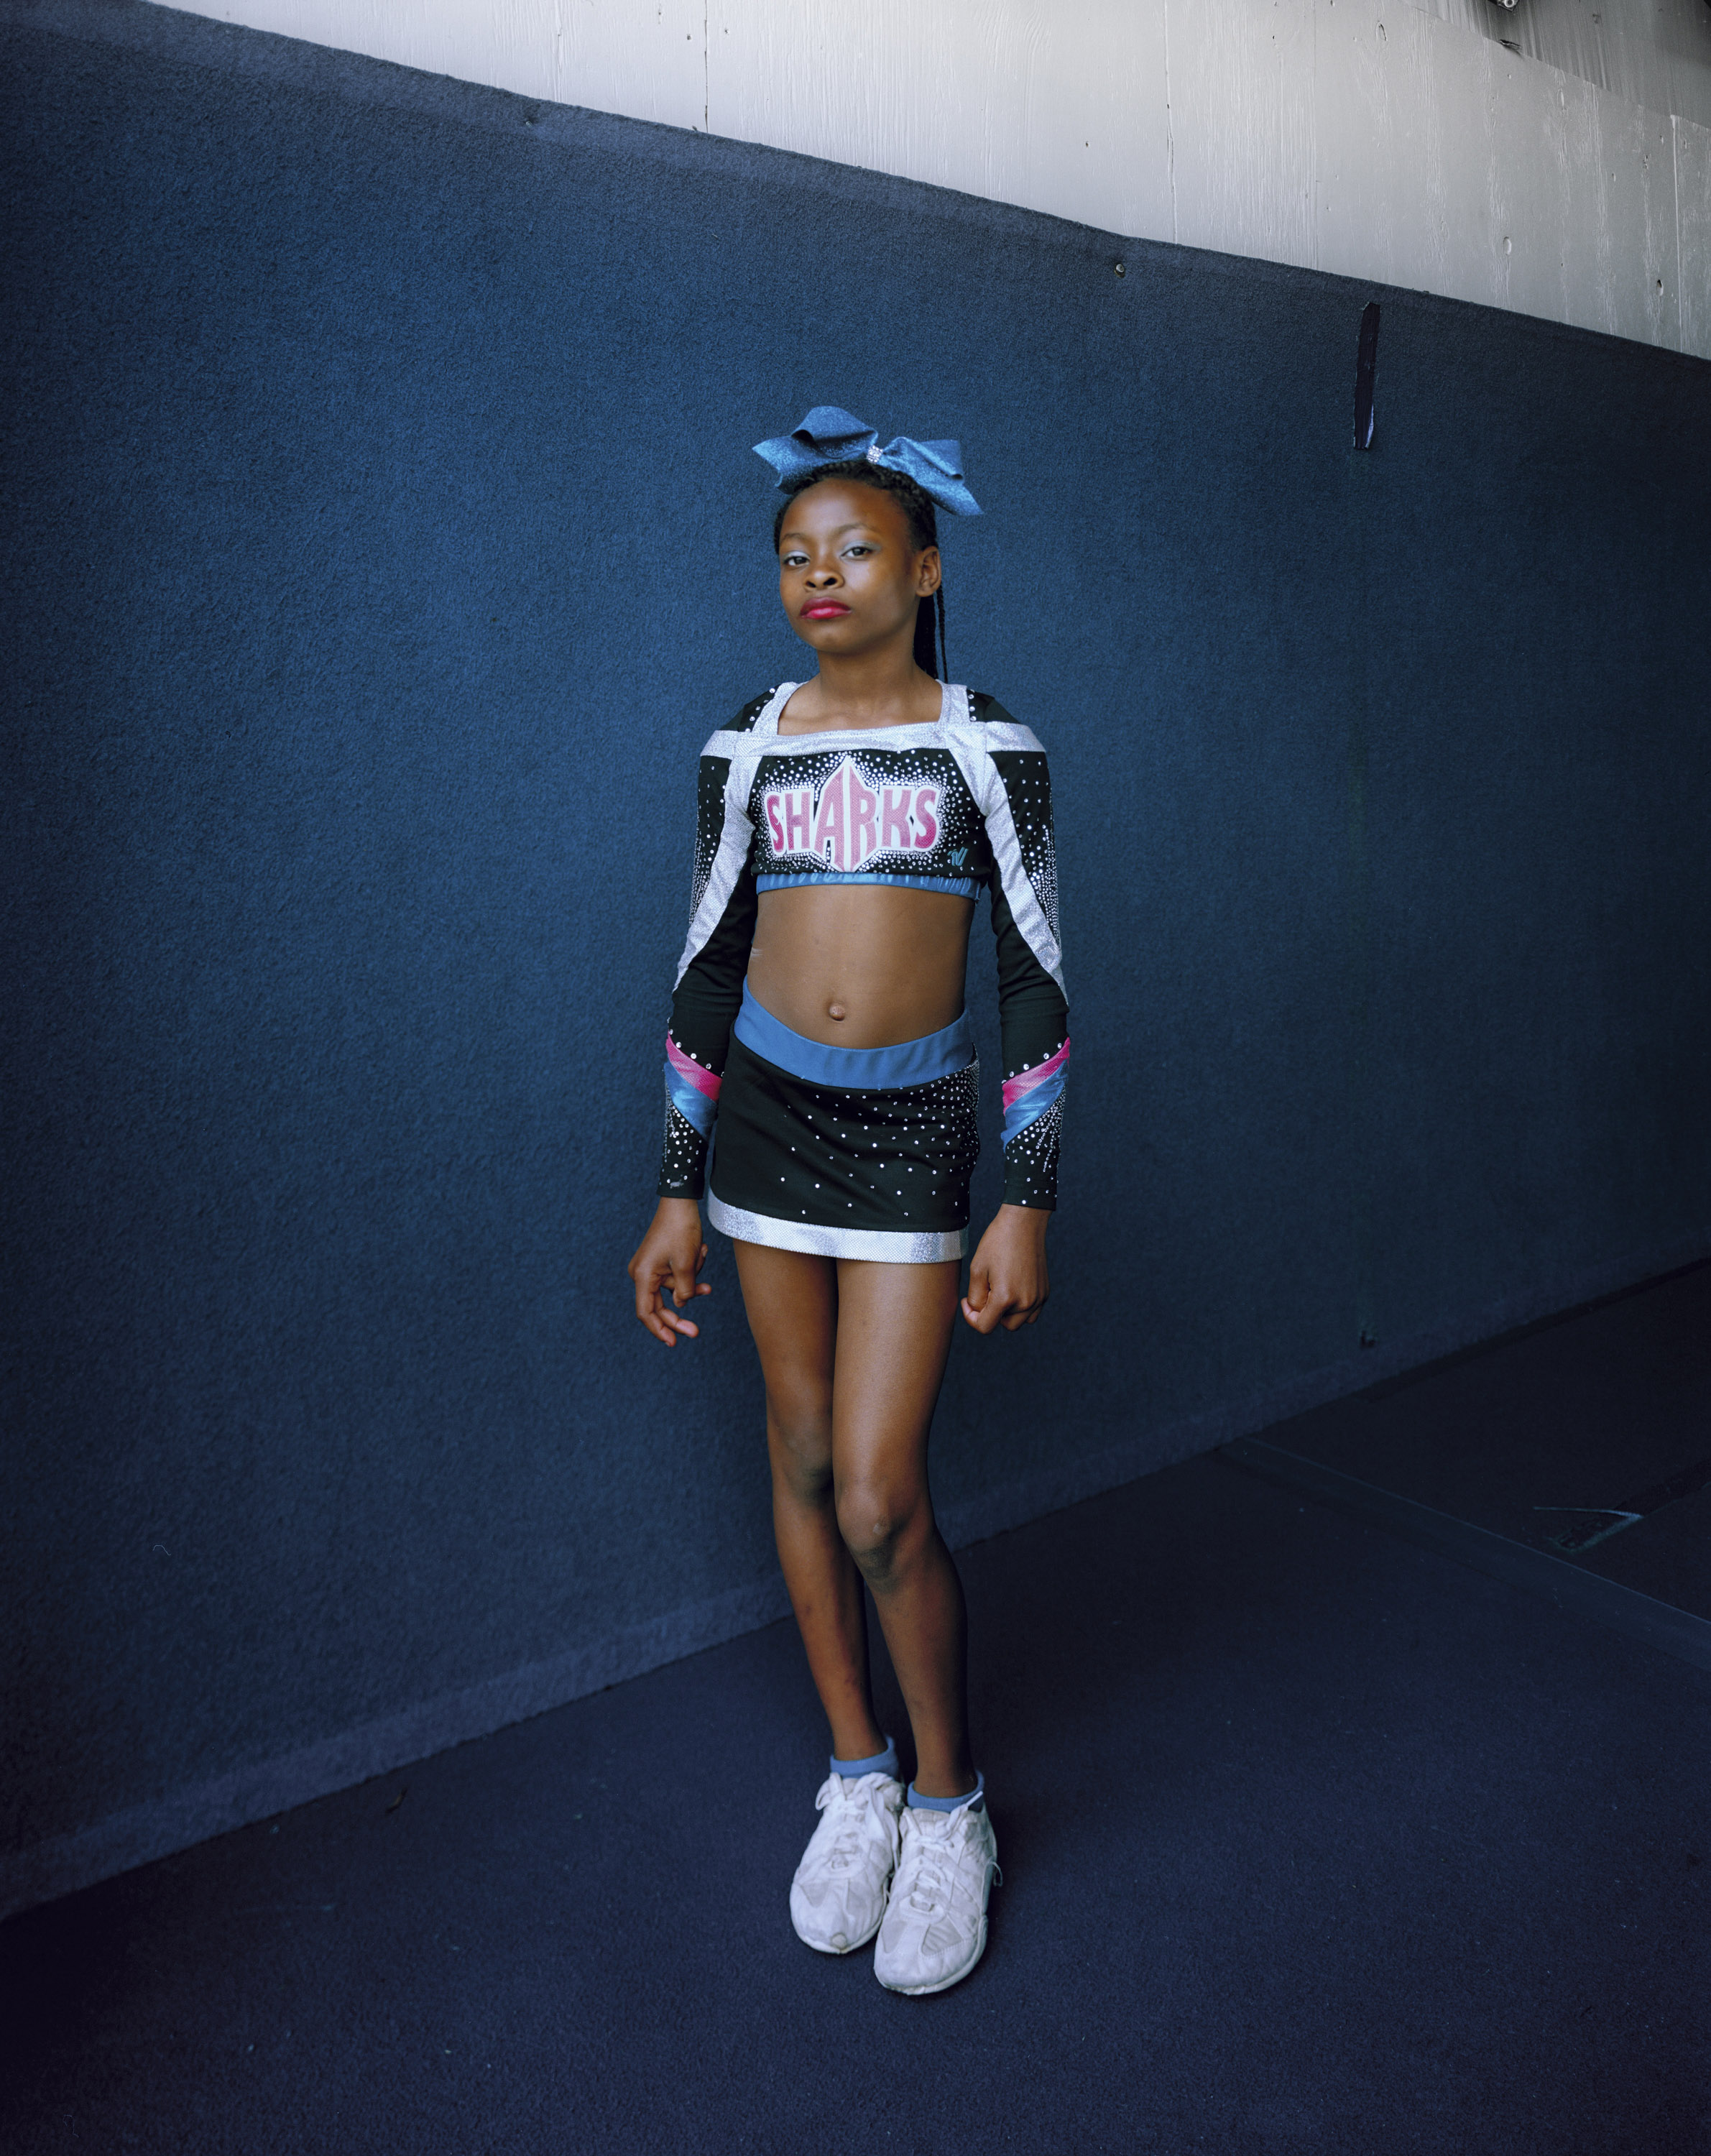 EVA VERBEECK  www.evaverbeeck.com  |  @evaverbeeck   Young cheerleader Jazmine, 11, stands for a portrait after her afternoon cheerleading practice in Savannah, GA, USA.